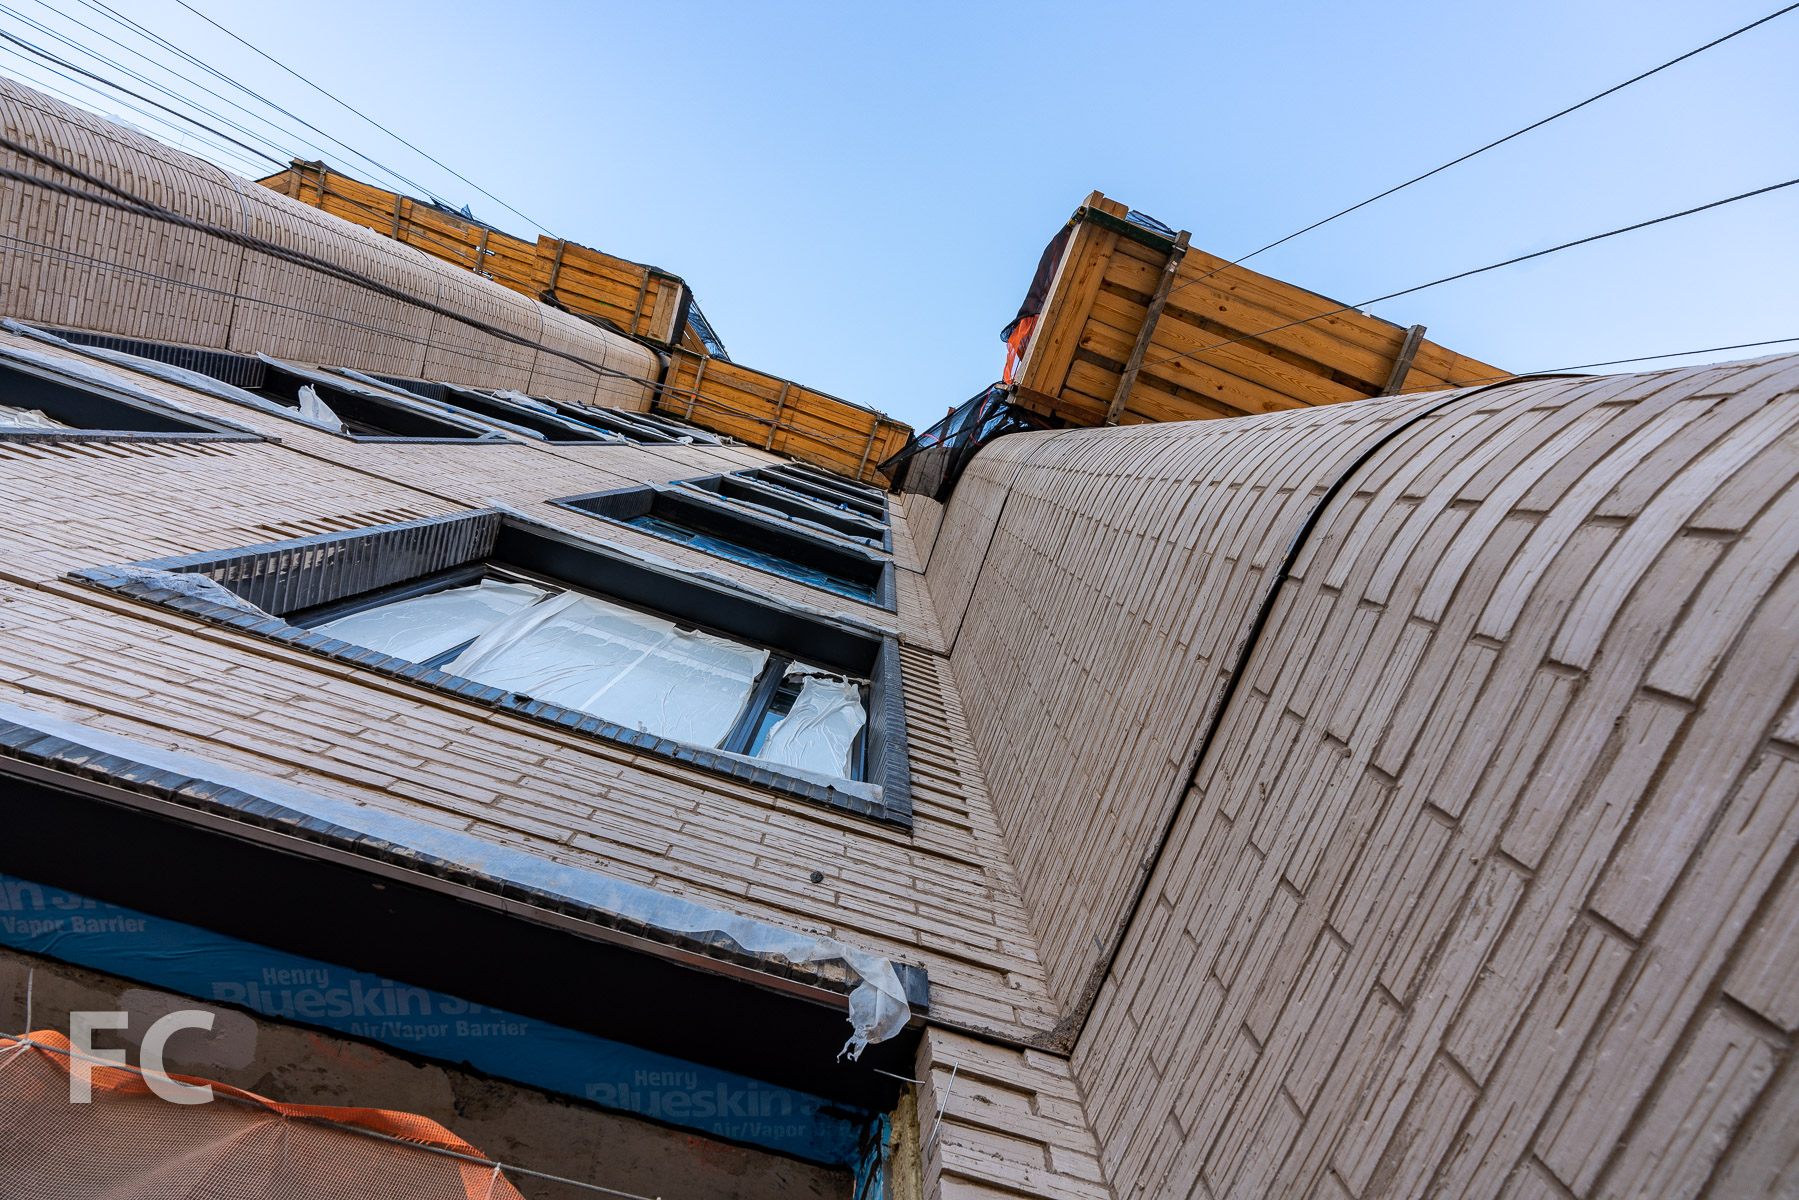 Looking up at the rounded brick corners.